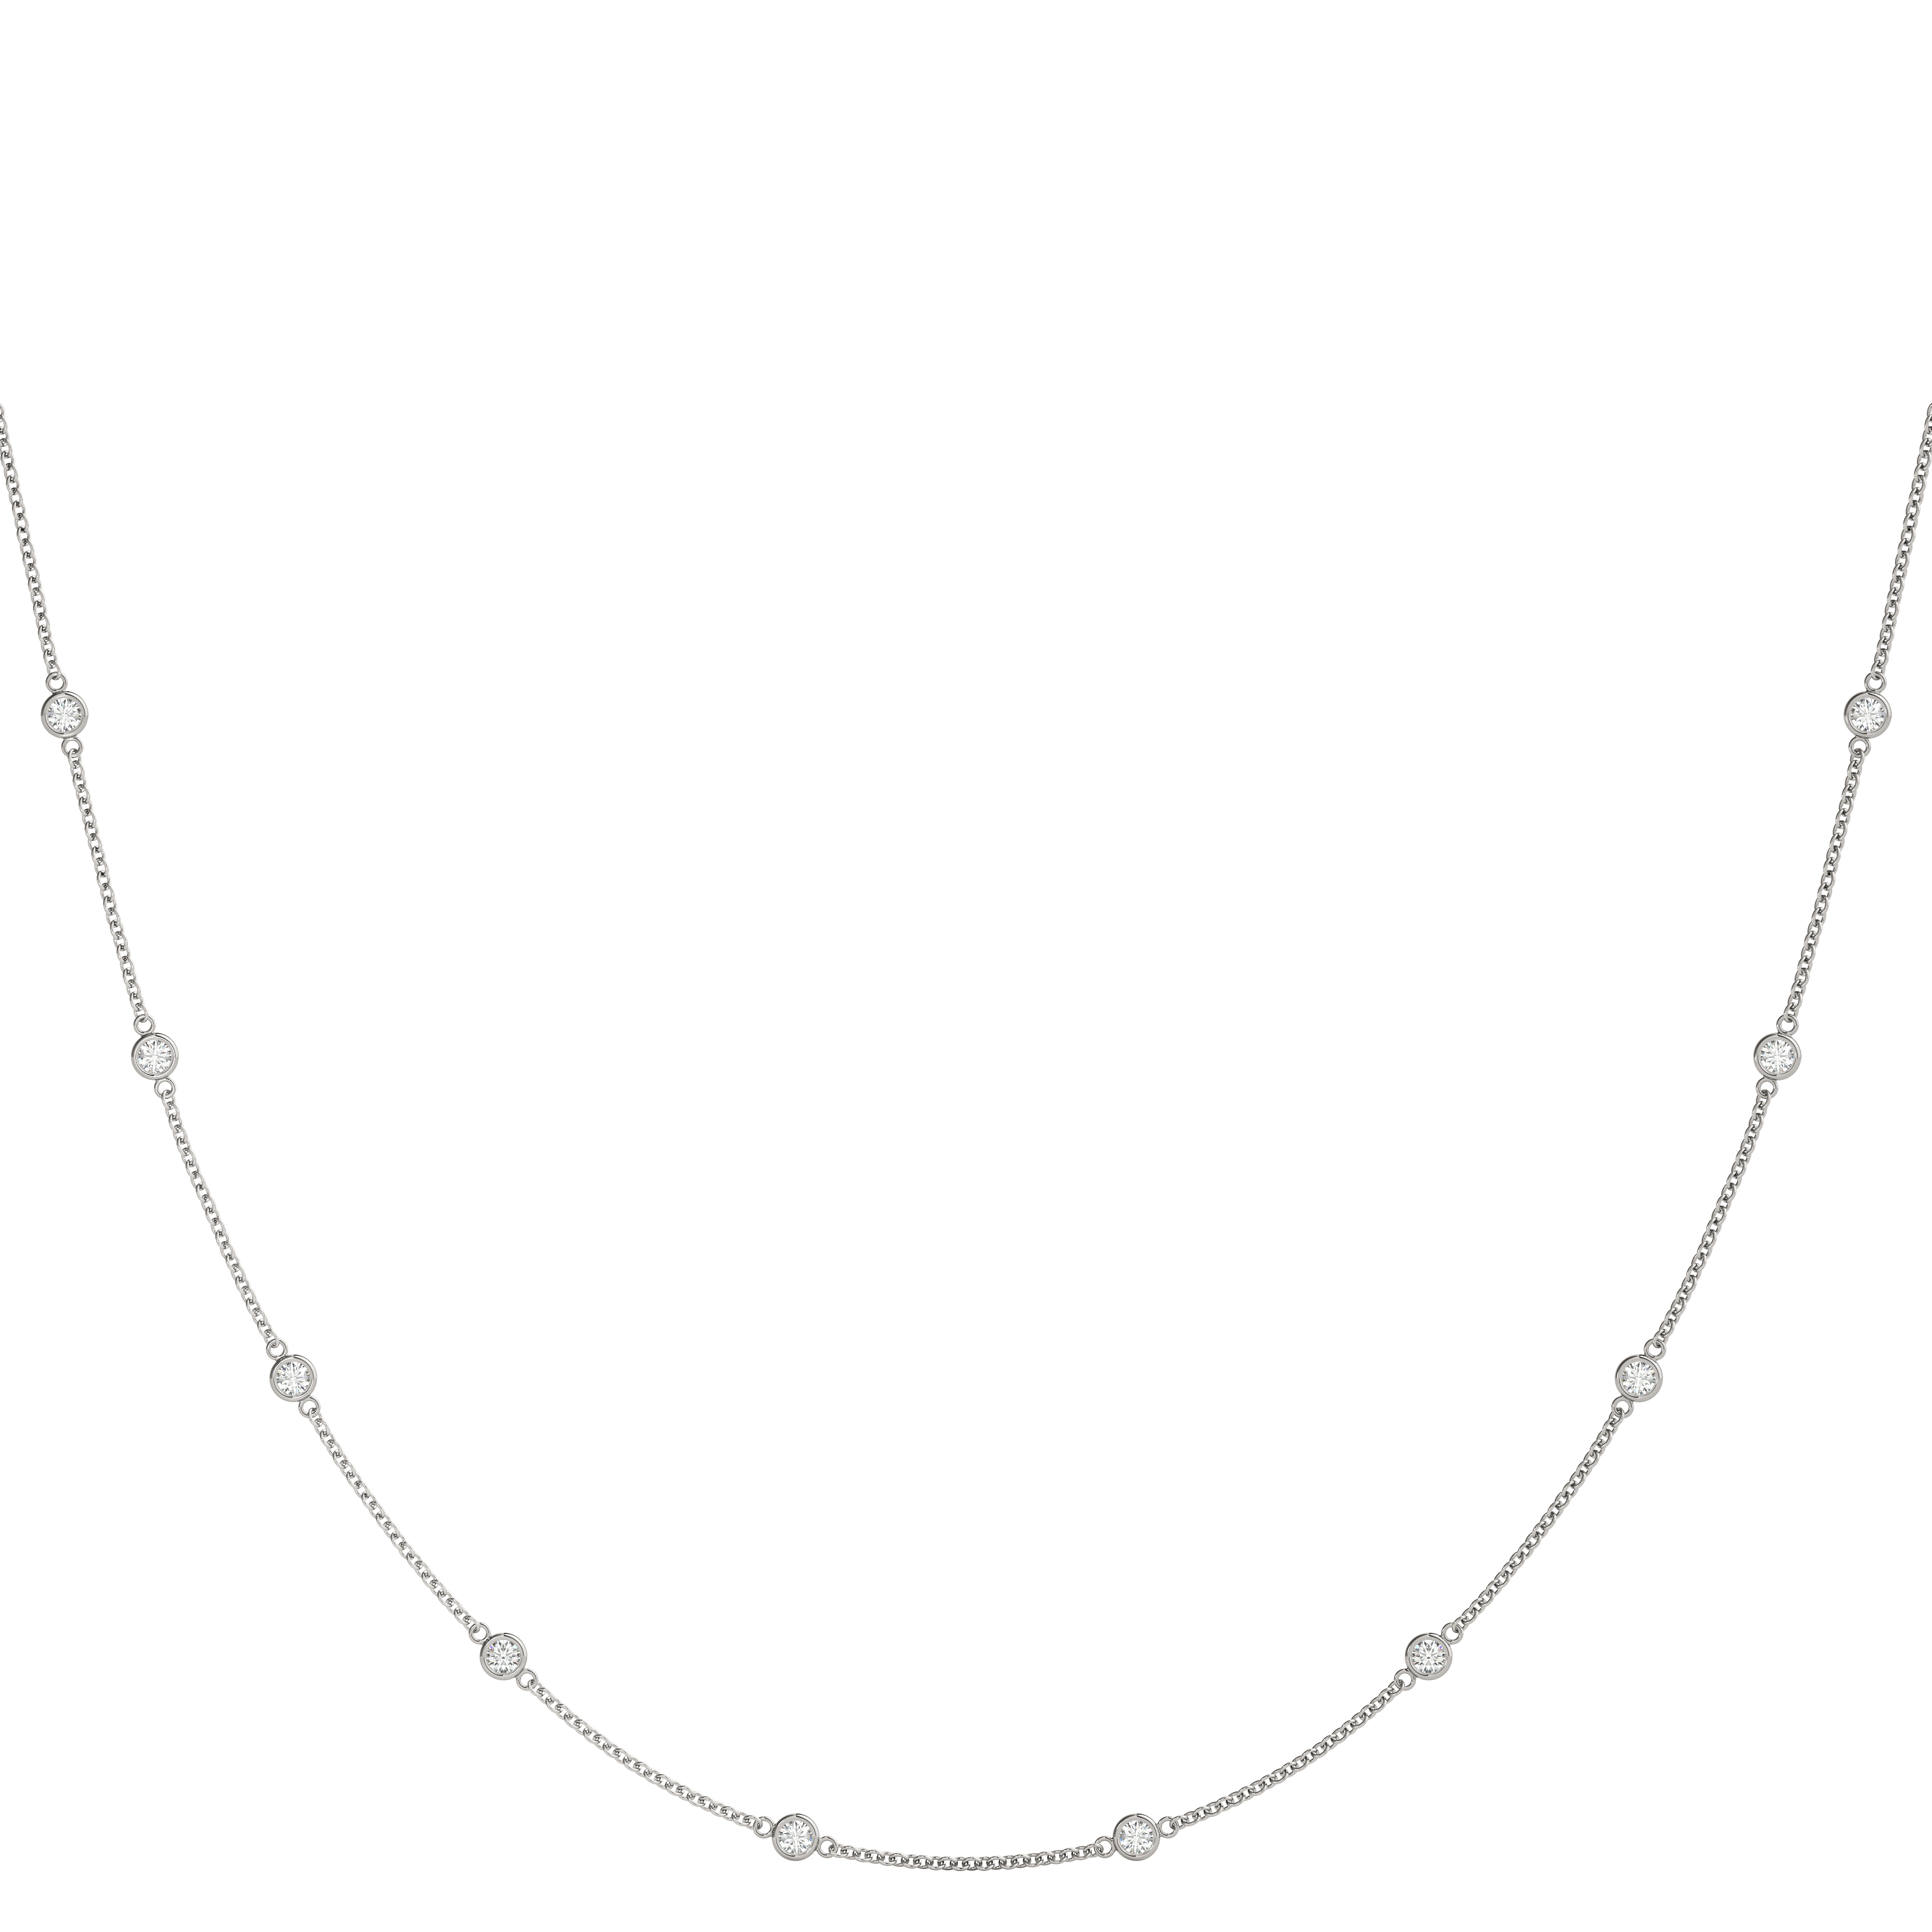 10 Diamonds By the Yard Necklace 1.25 Ct.